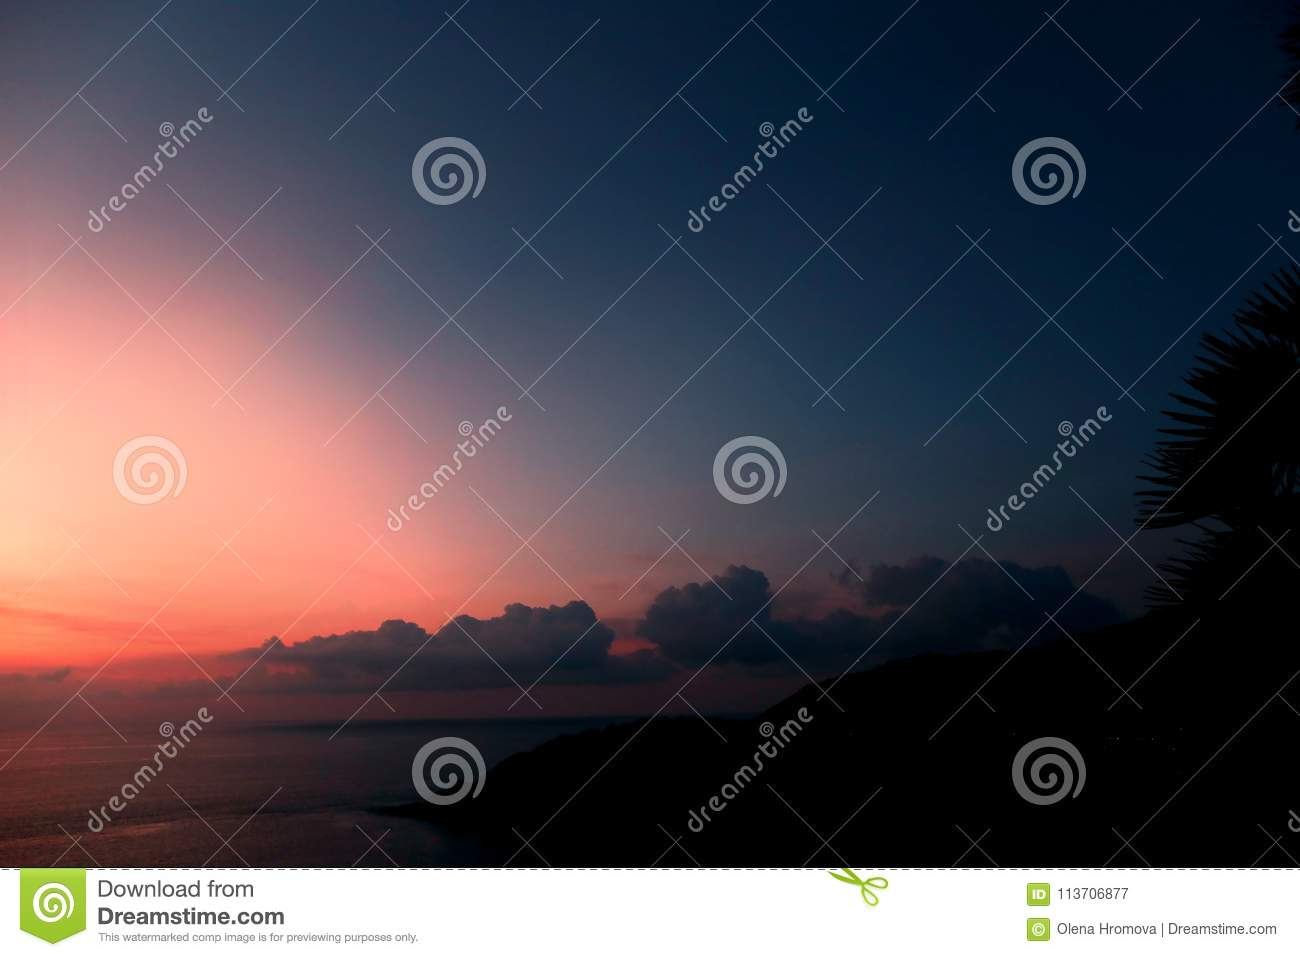 Landscape of light, sky and clouds in evening, blue and pink sunset near Adaman Sea horizon